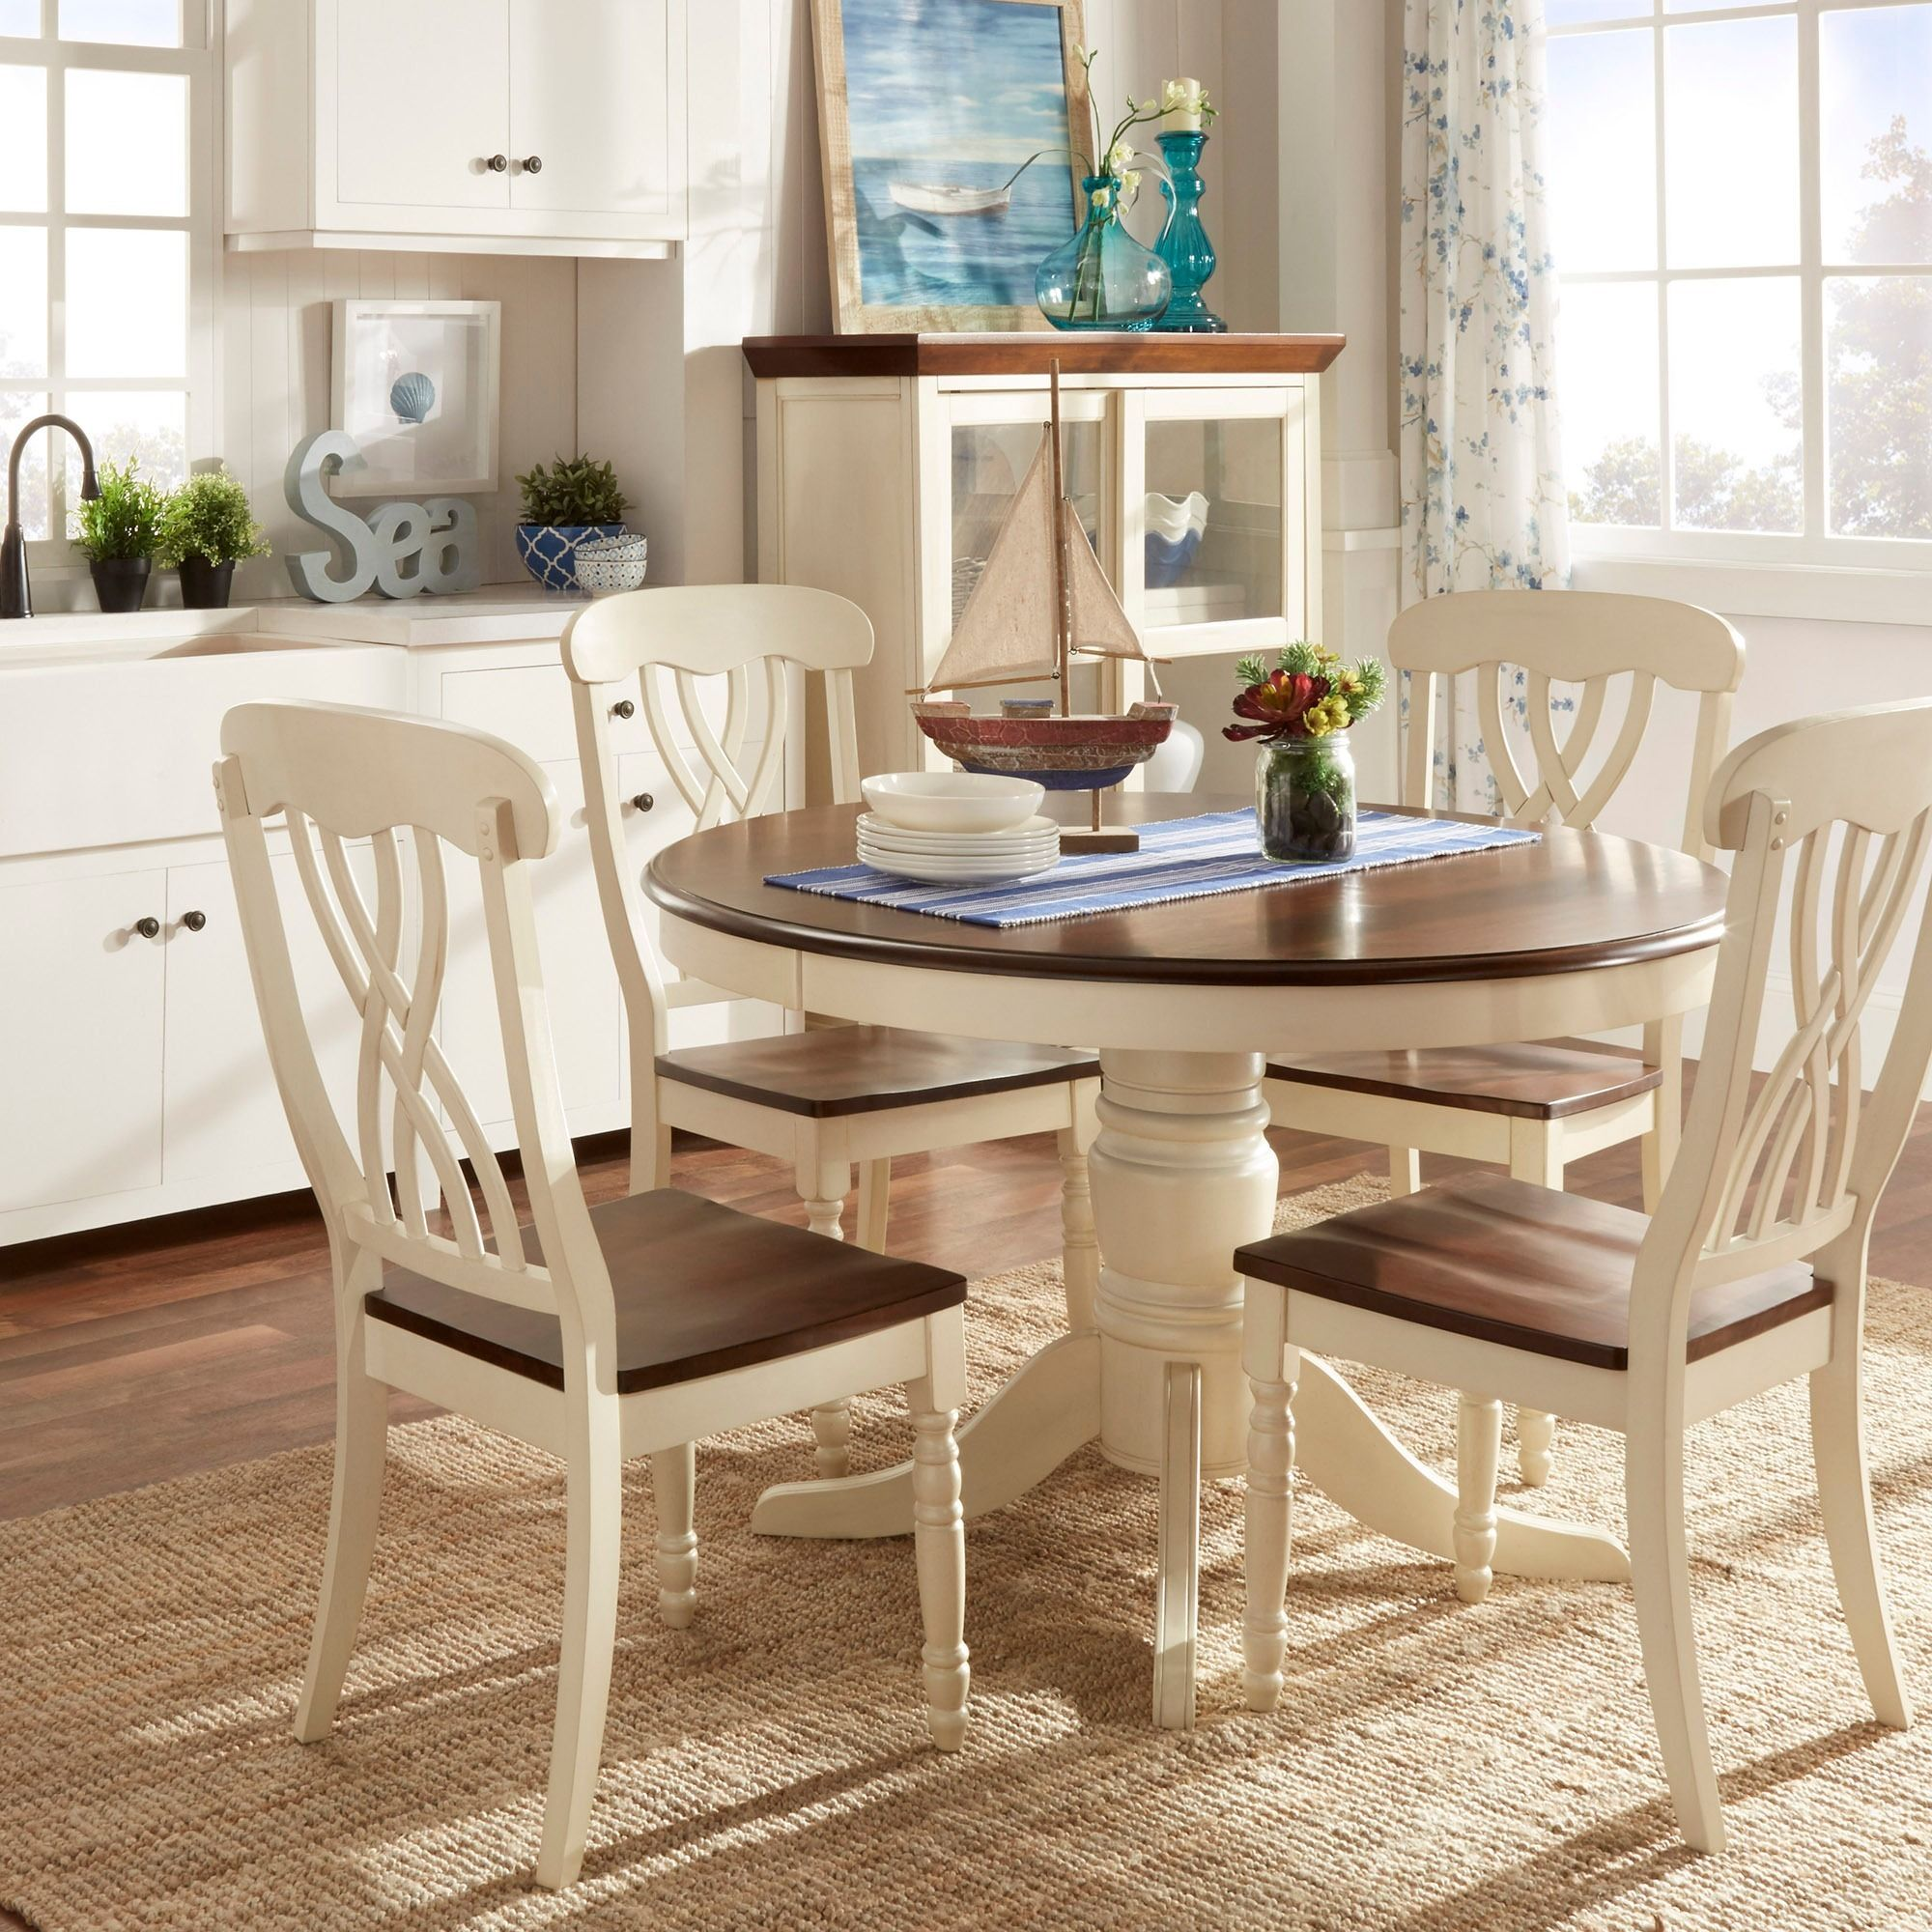 The Design Of This 5 Piece Dining Set From Mackenzie Captures The Essence Of A Country Home